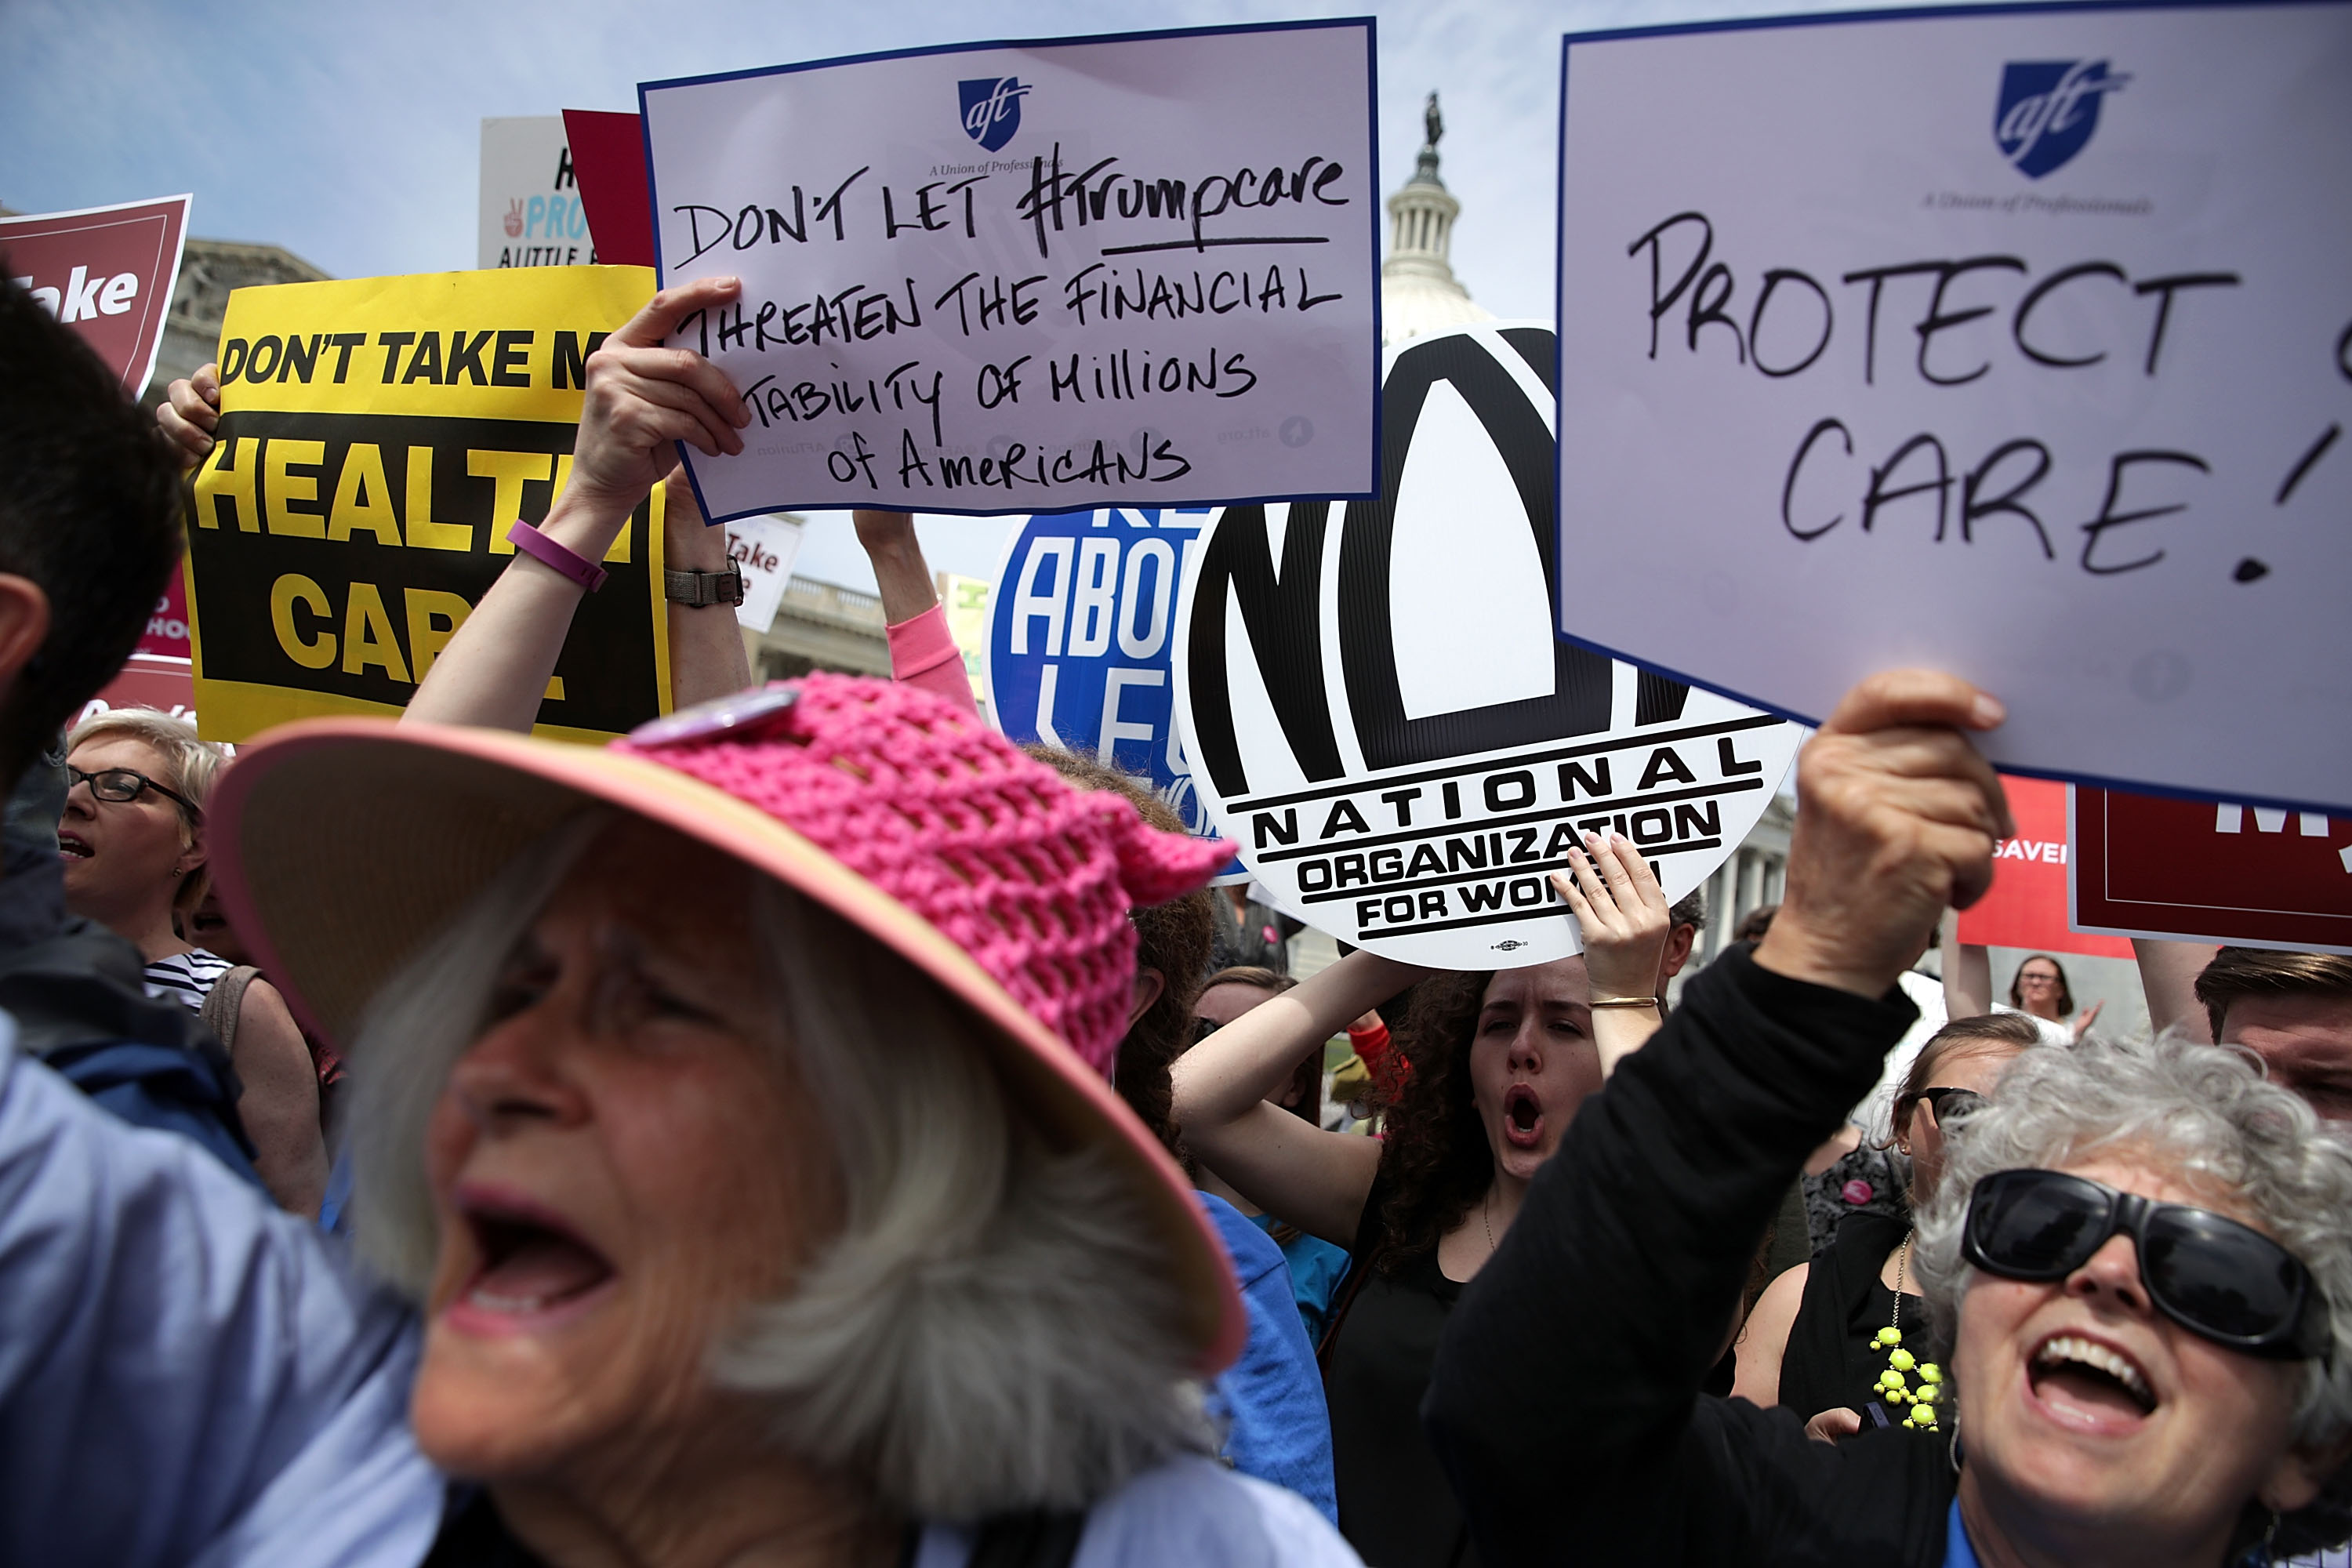 Activists hold signs during a Stop 'Trumpcare' rally May 4, 2017 in front of the Capitol in Washington, DC. Congressional Democrats joined activists for a rally to urge not to replace Obamacare, also known as the Affordable Care Act.